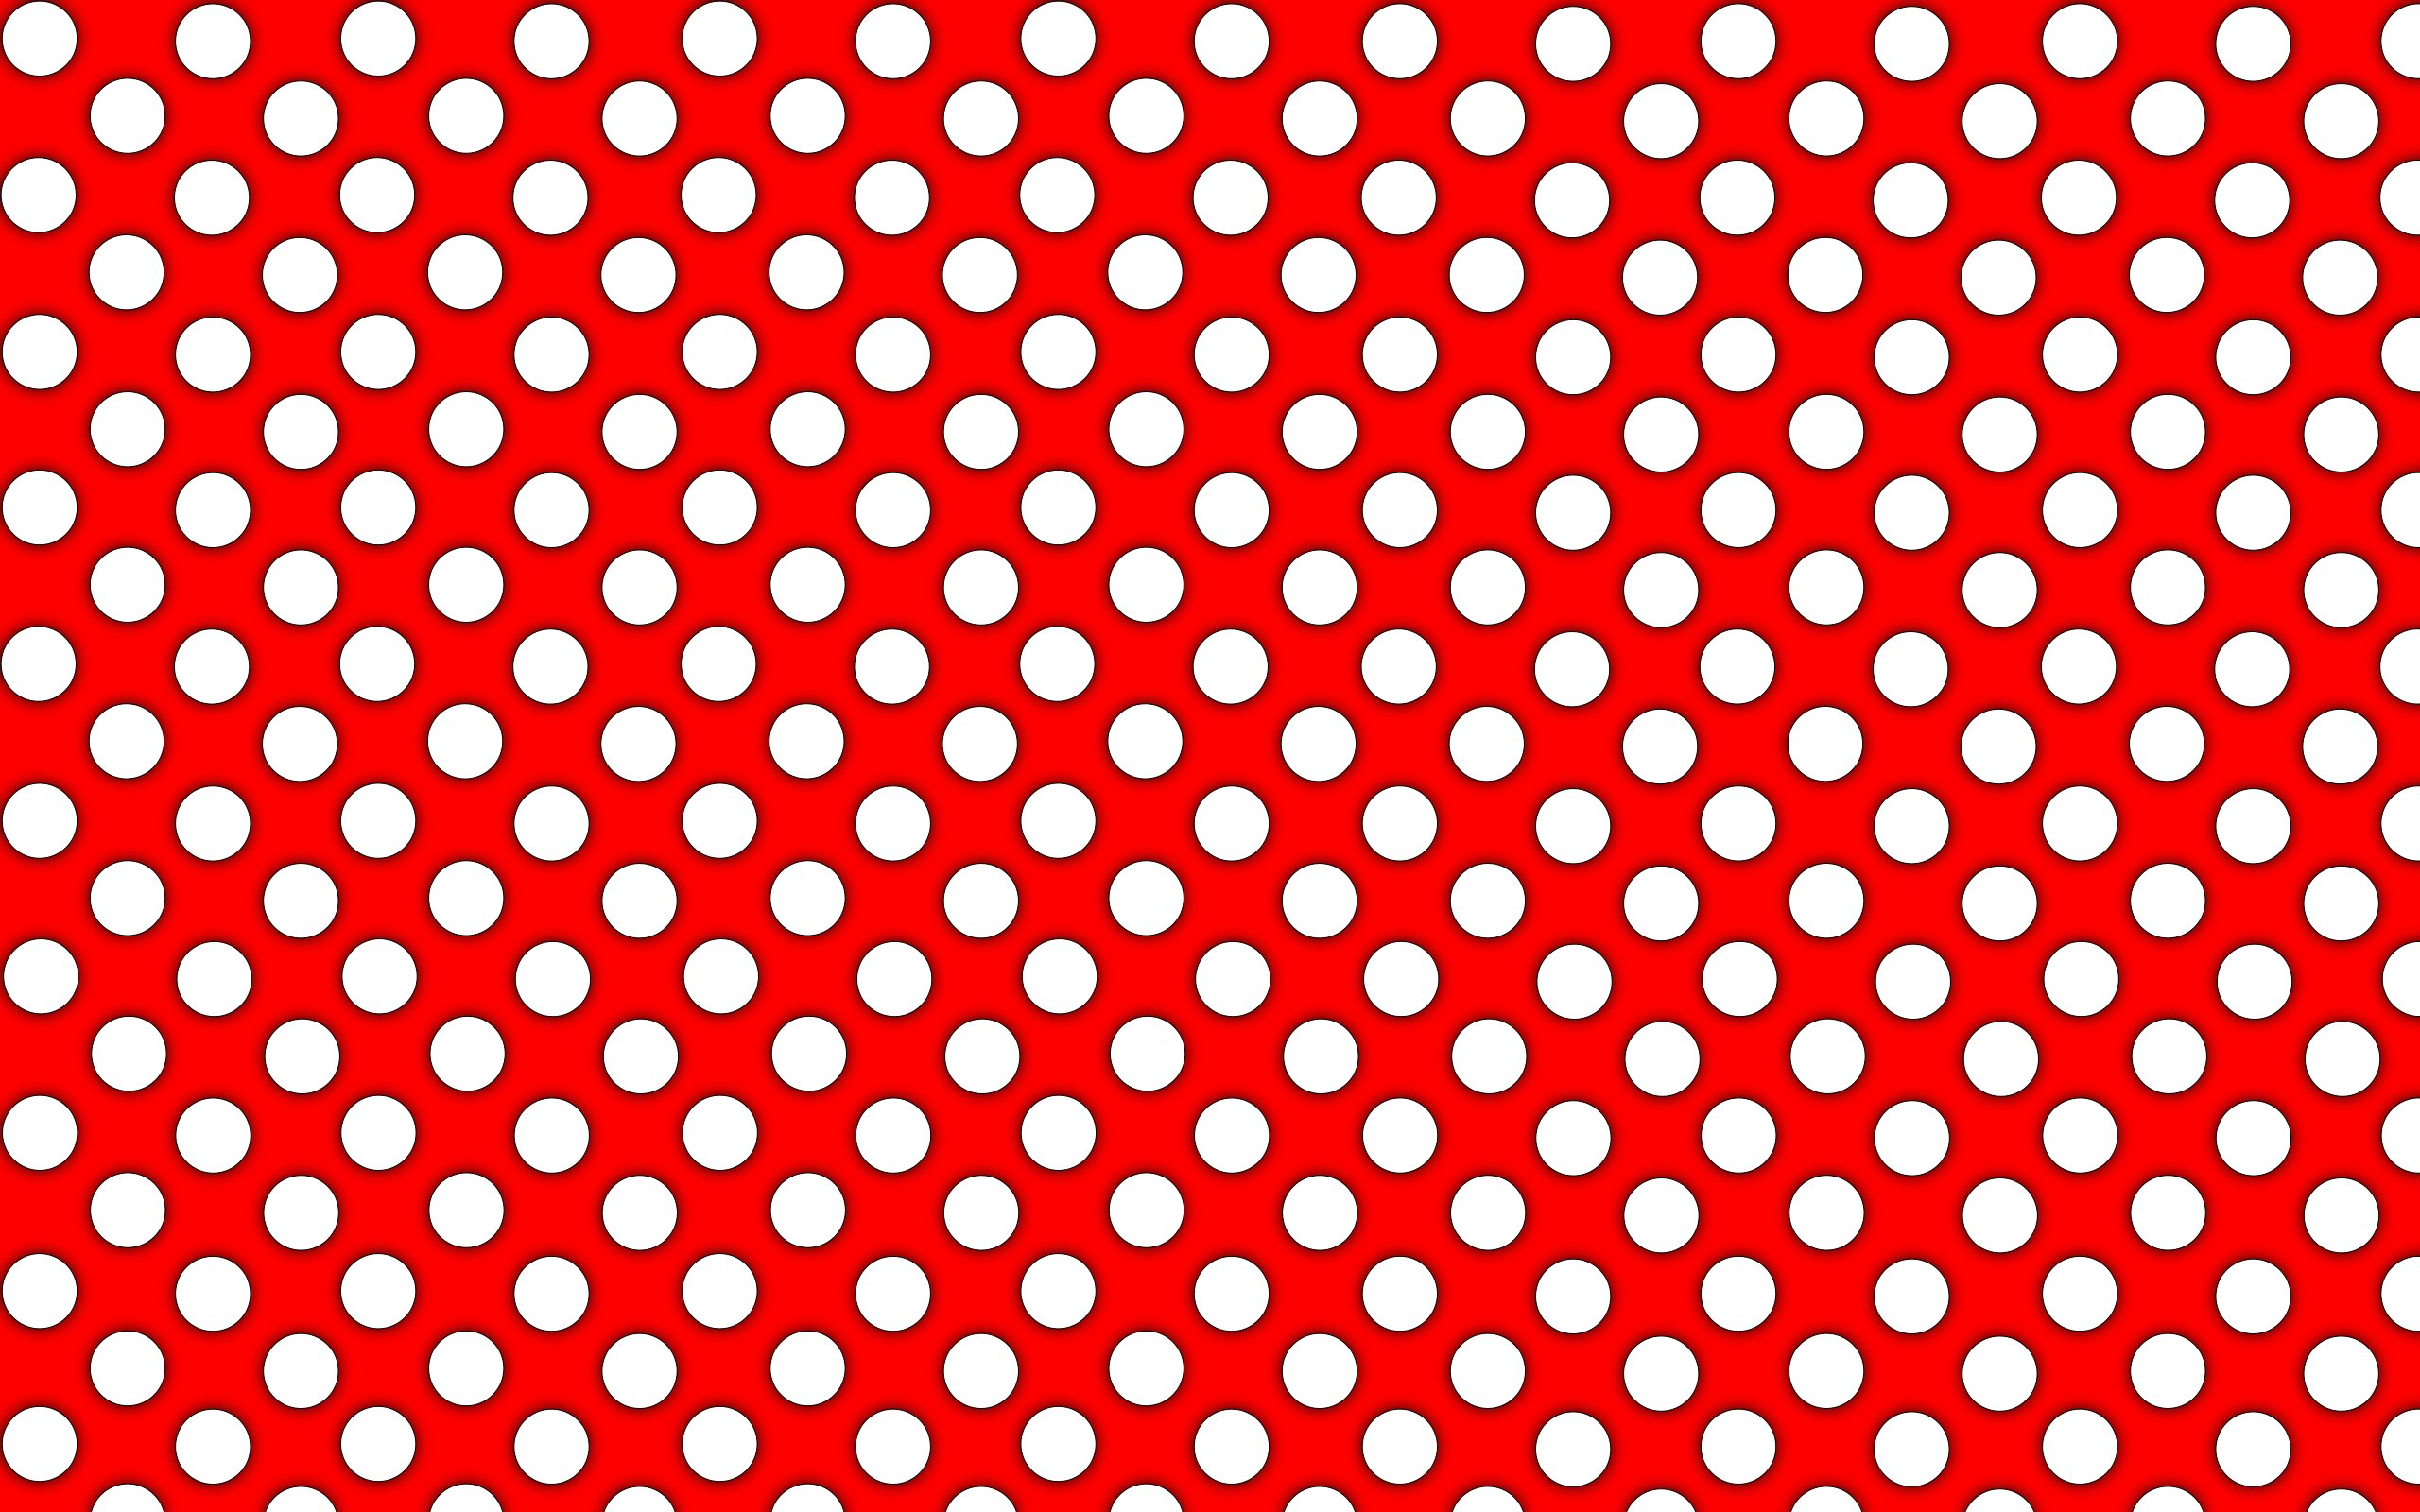 red polka dot wallpaper wallpapersafari